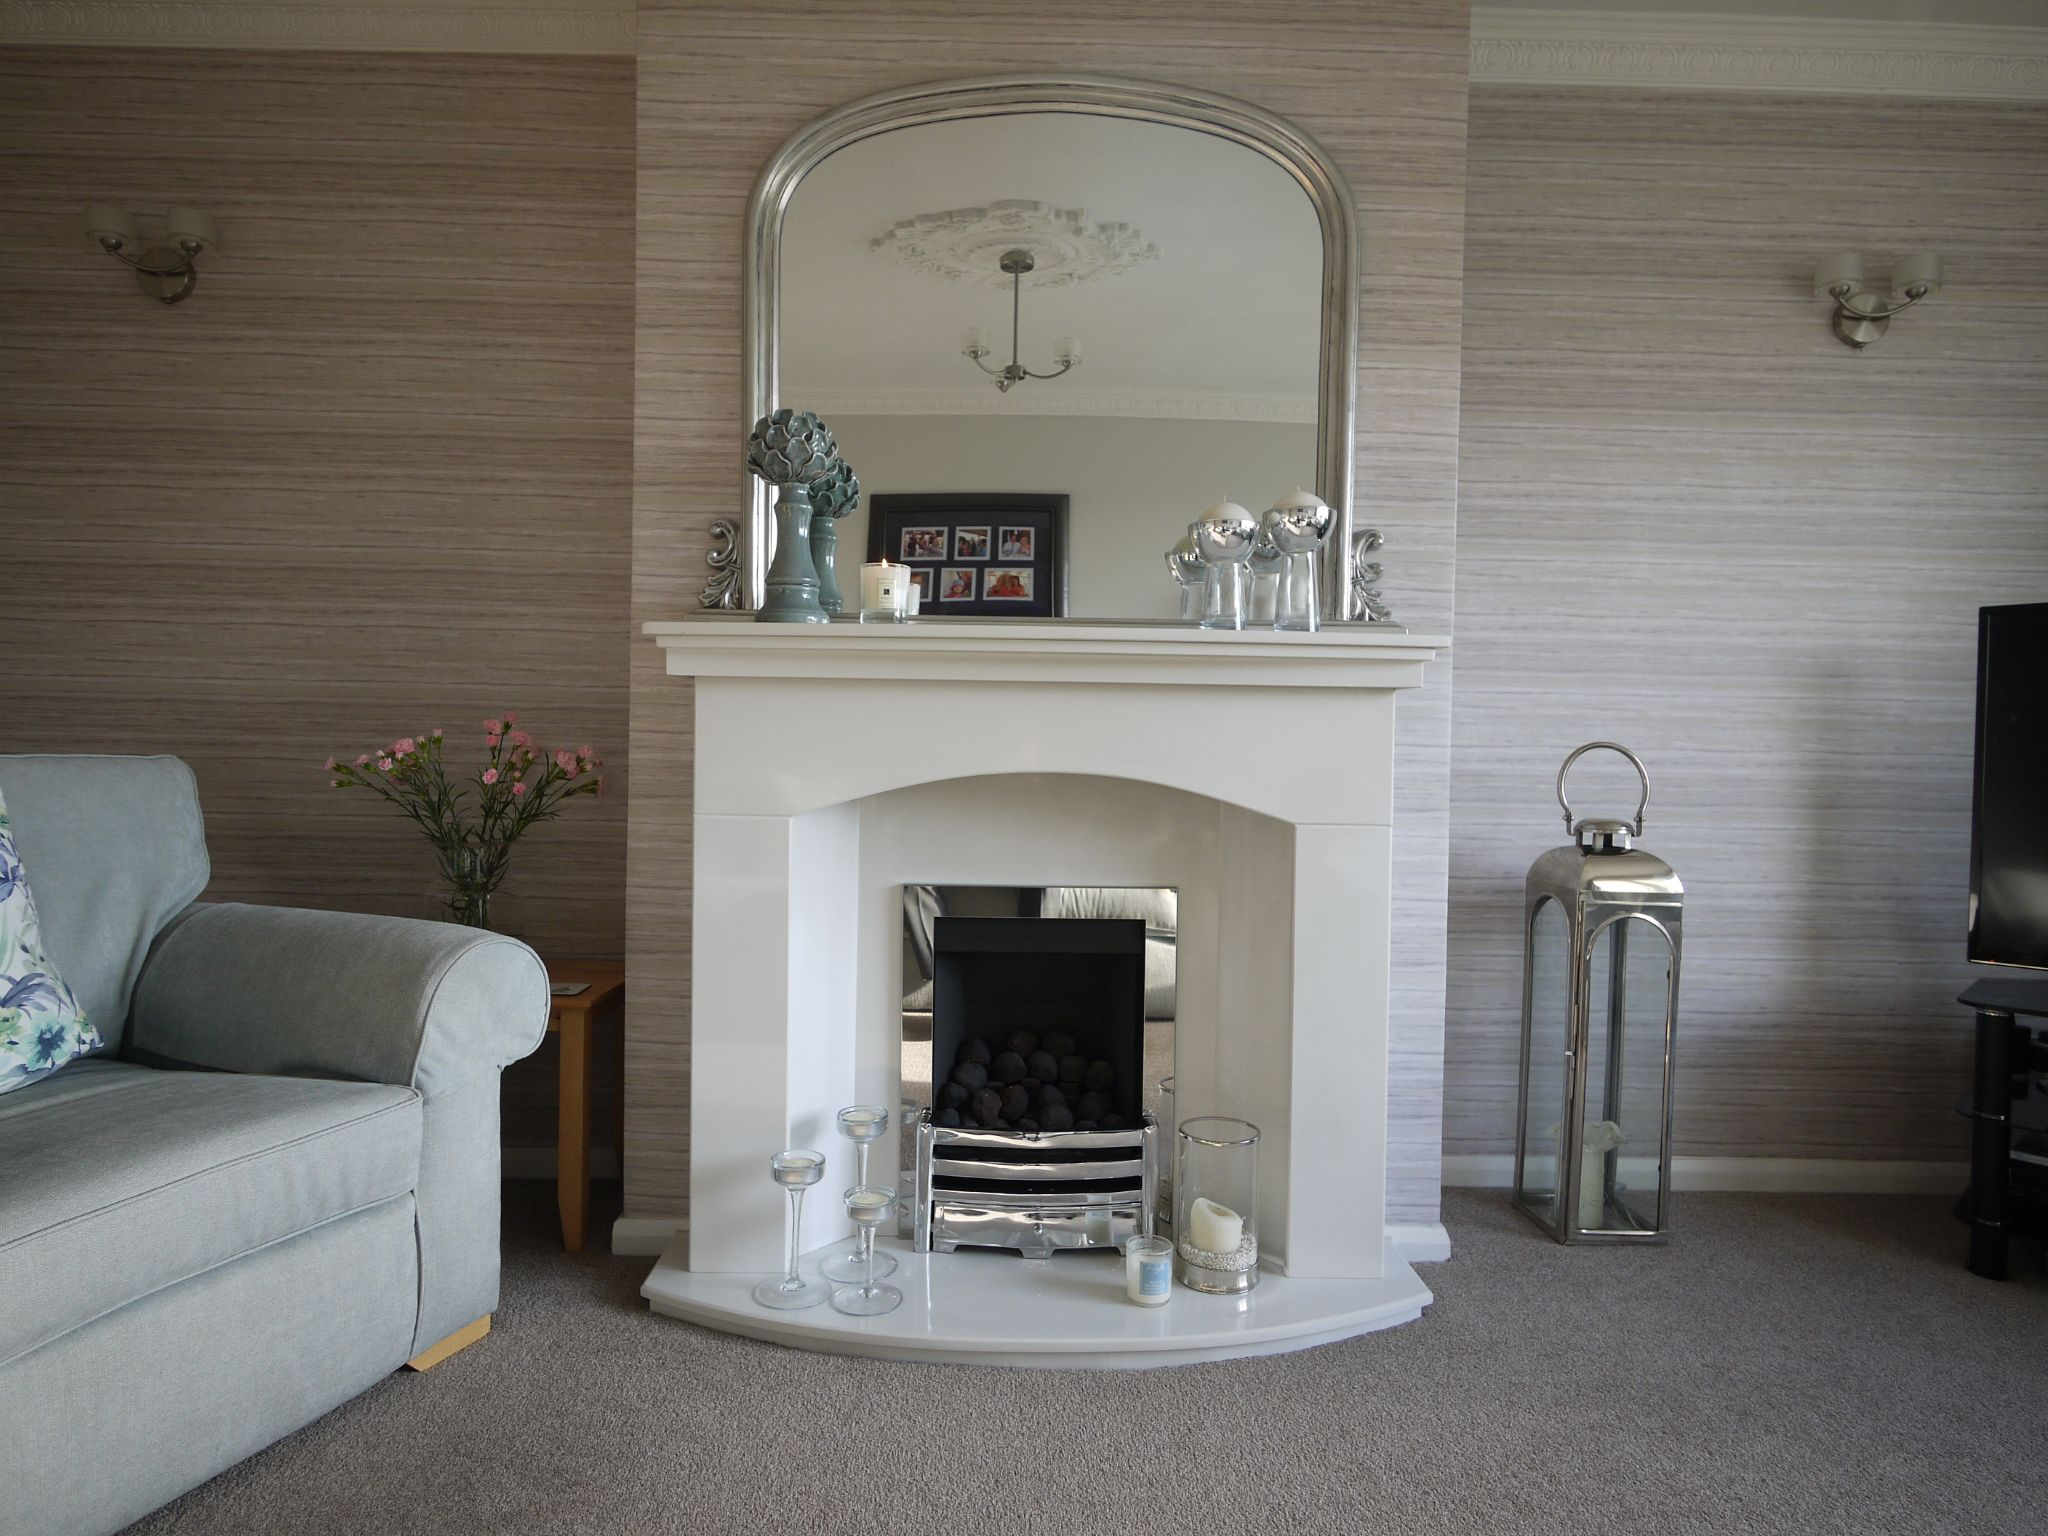 3 bedroom semi-detached house SSTC in Halifax - fireplace.